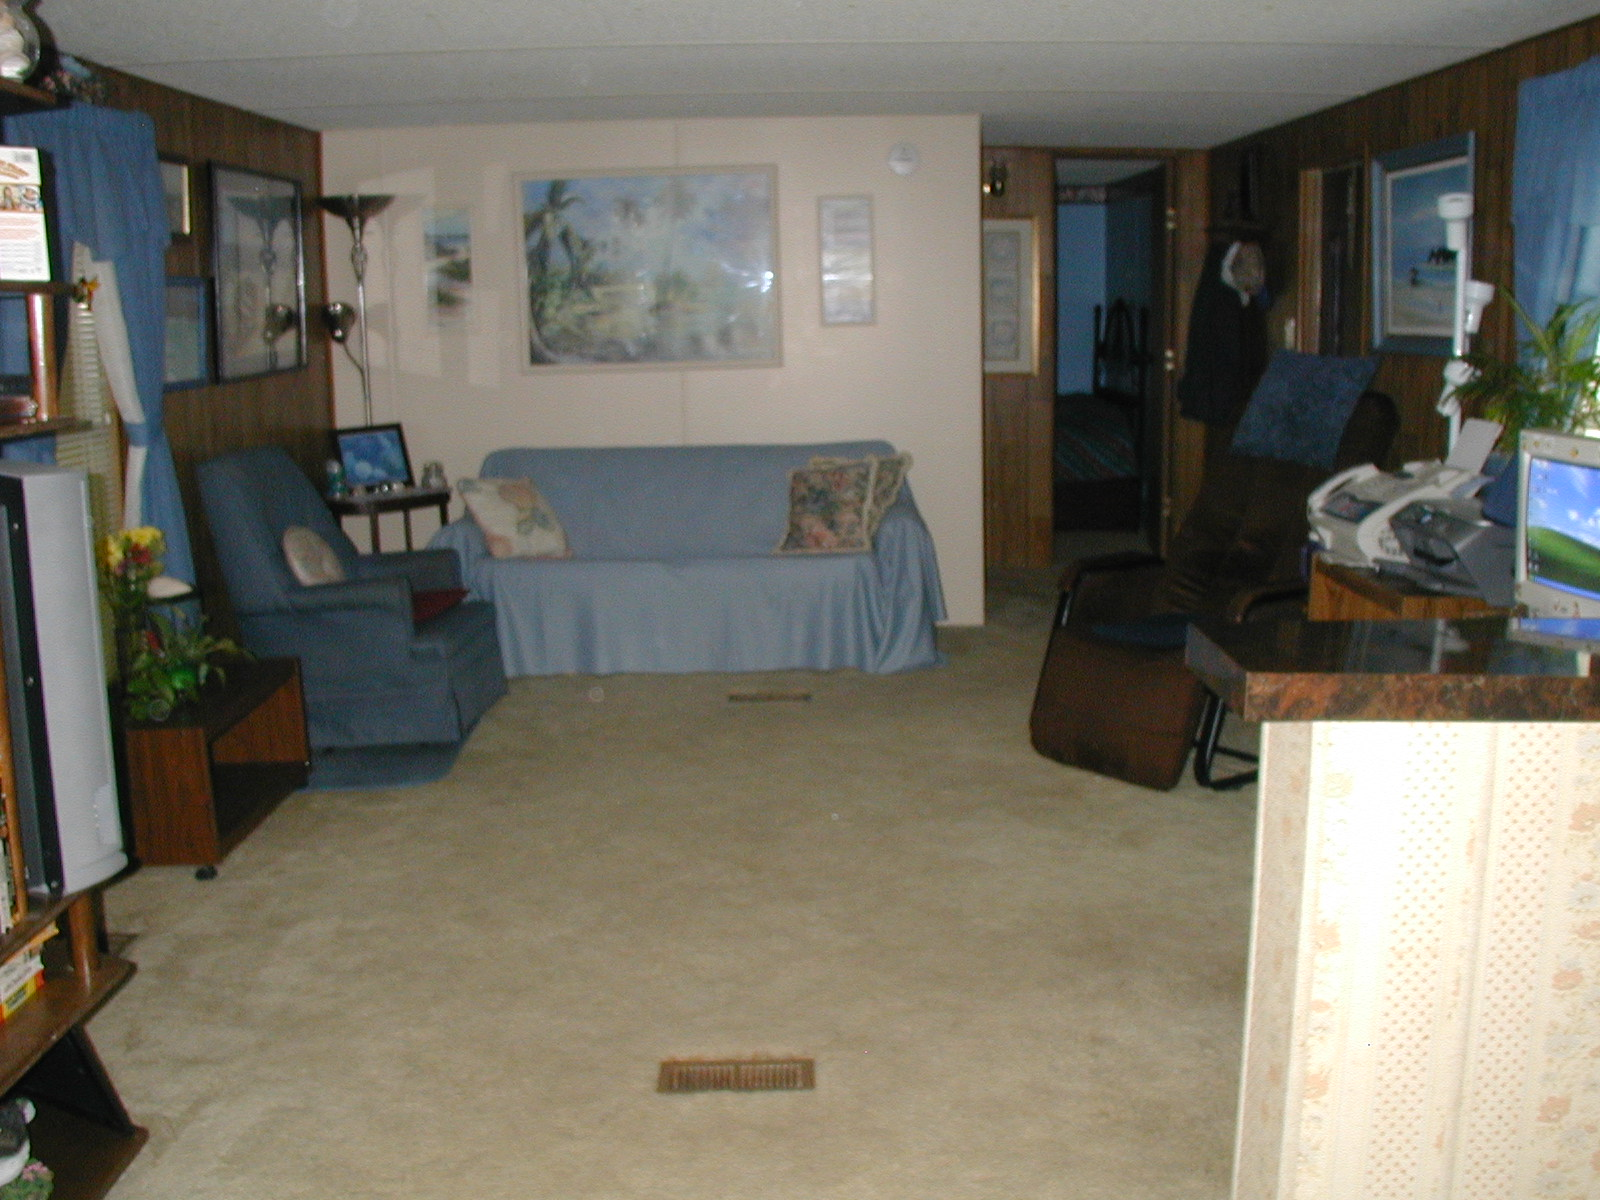 Living room from kitchen see note below lake house for 17 x 14 living room